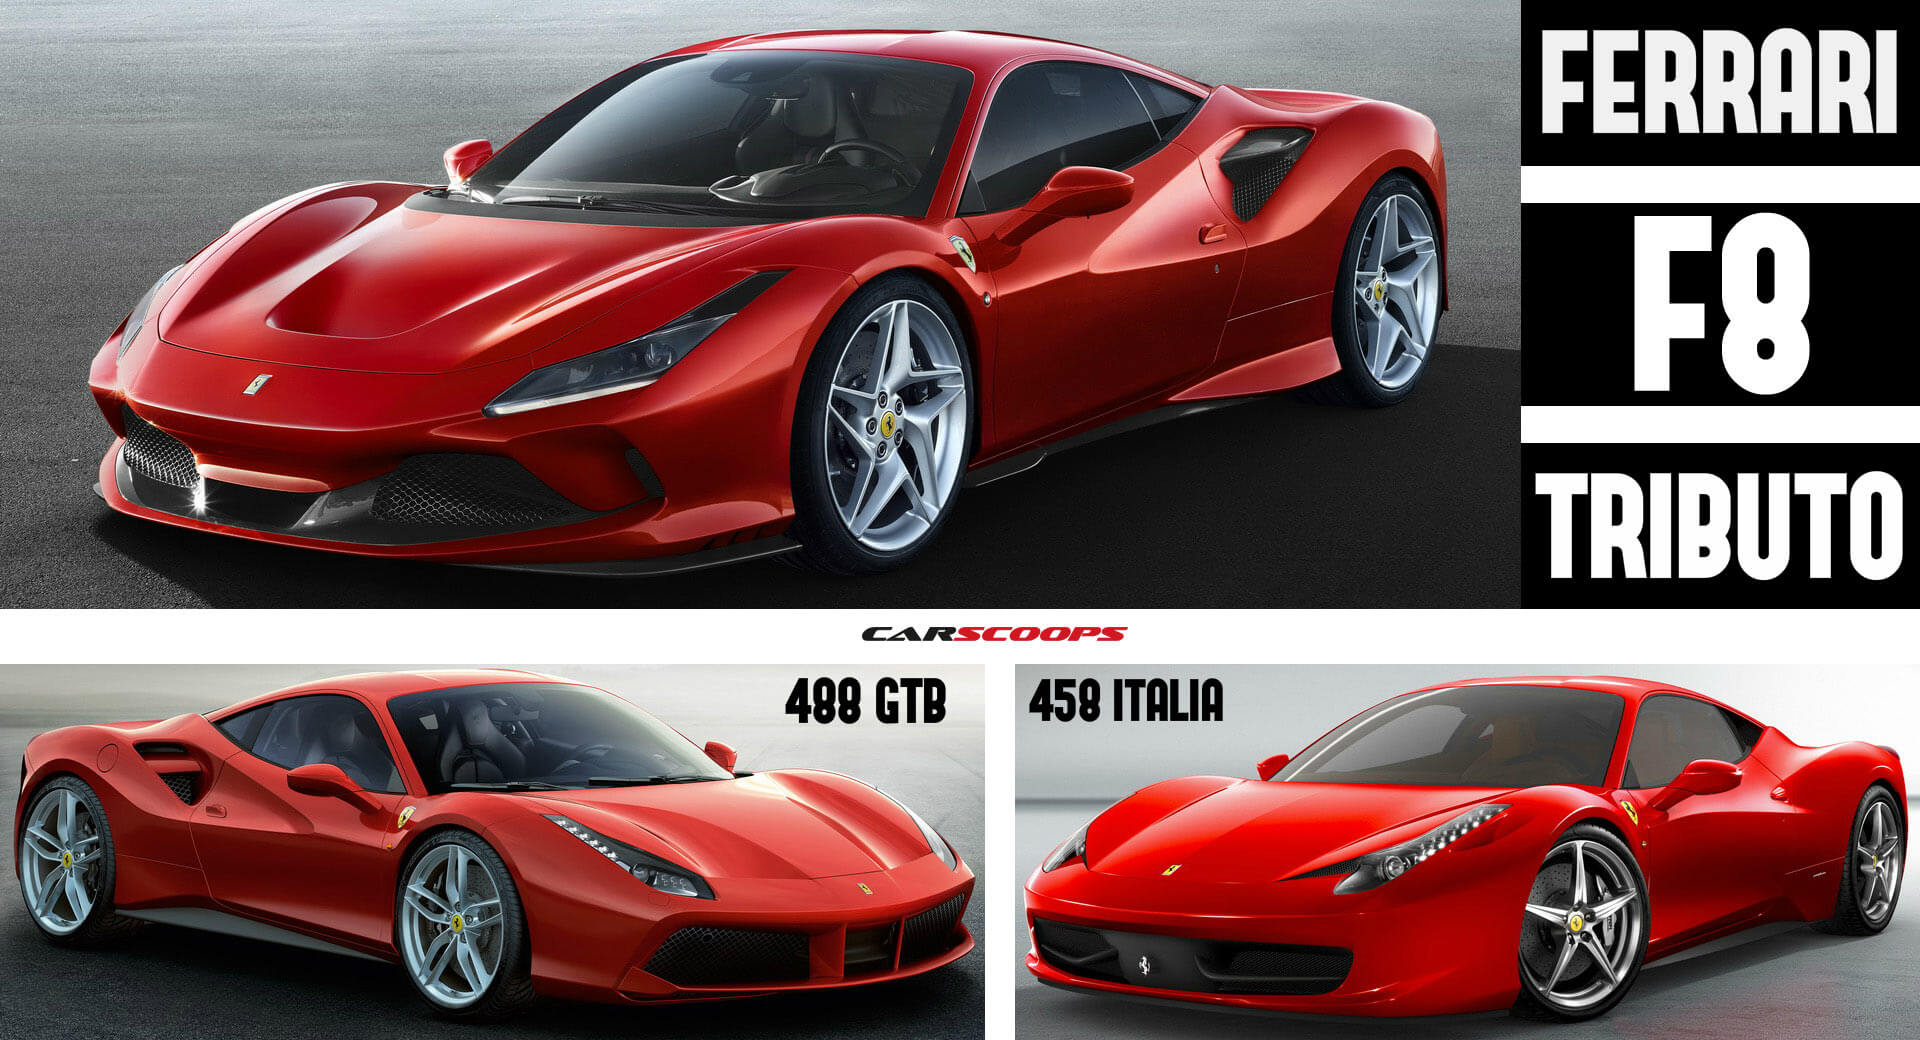 Ferrari F8 Tributo Vs 488 Gtb Vs 458 Italia A Stallion S Growth Carscoops